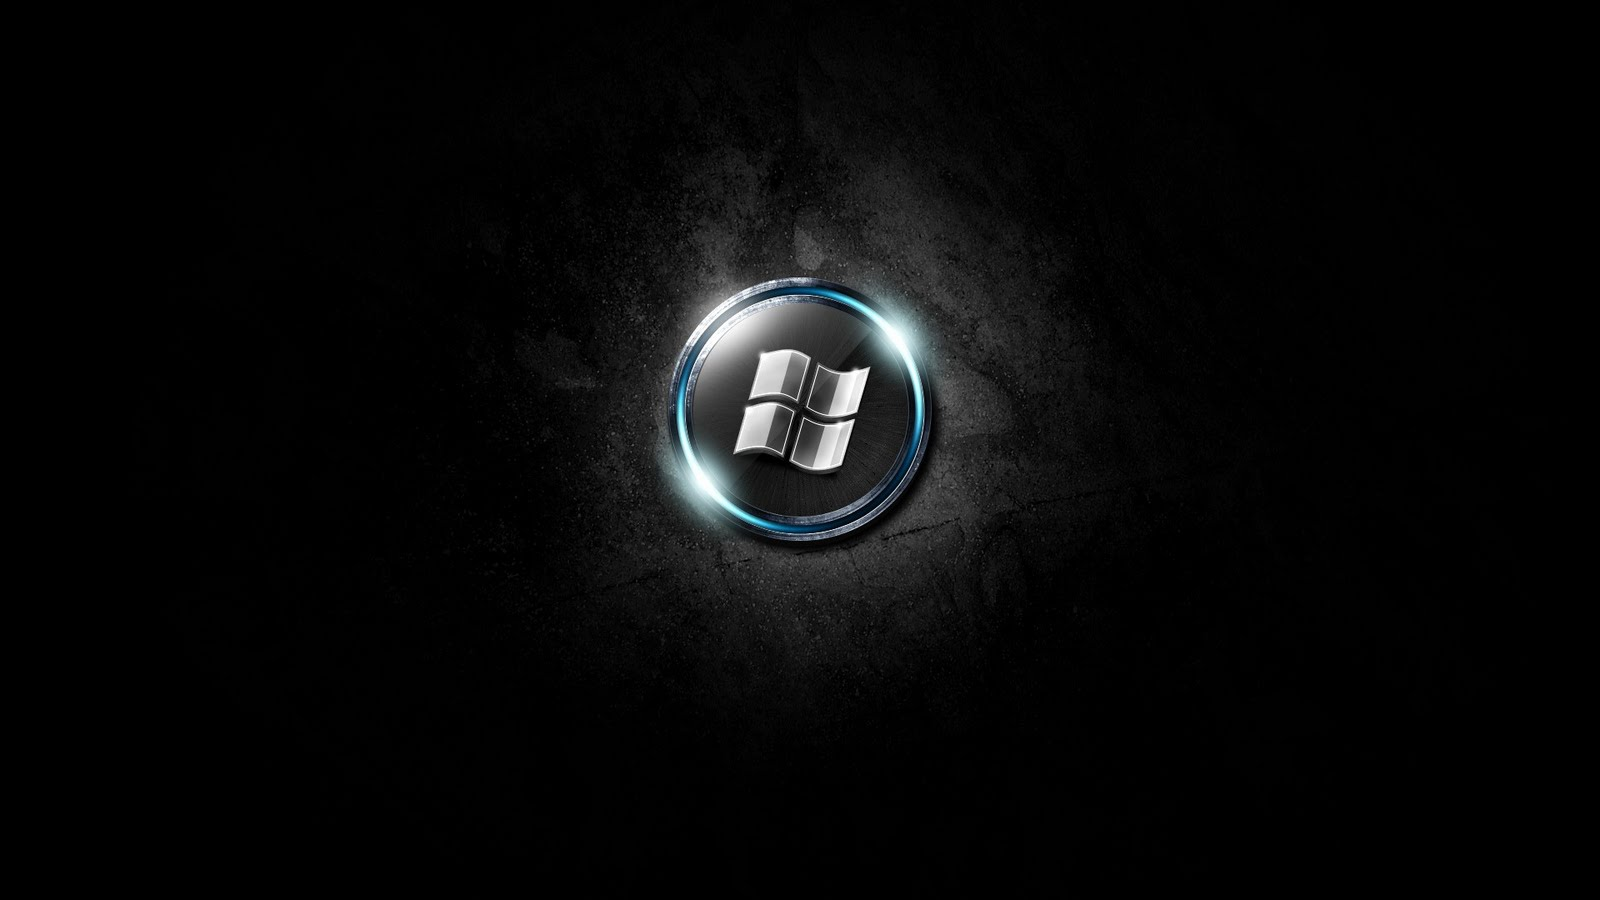 cool windows 7 logo full hd wallpaper is a great wallpaper for your 1600x900